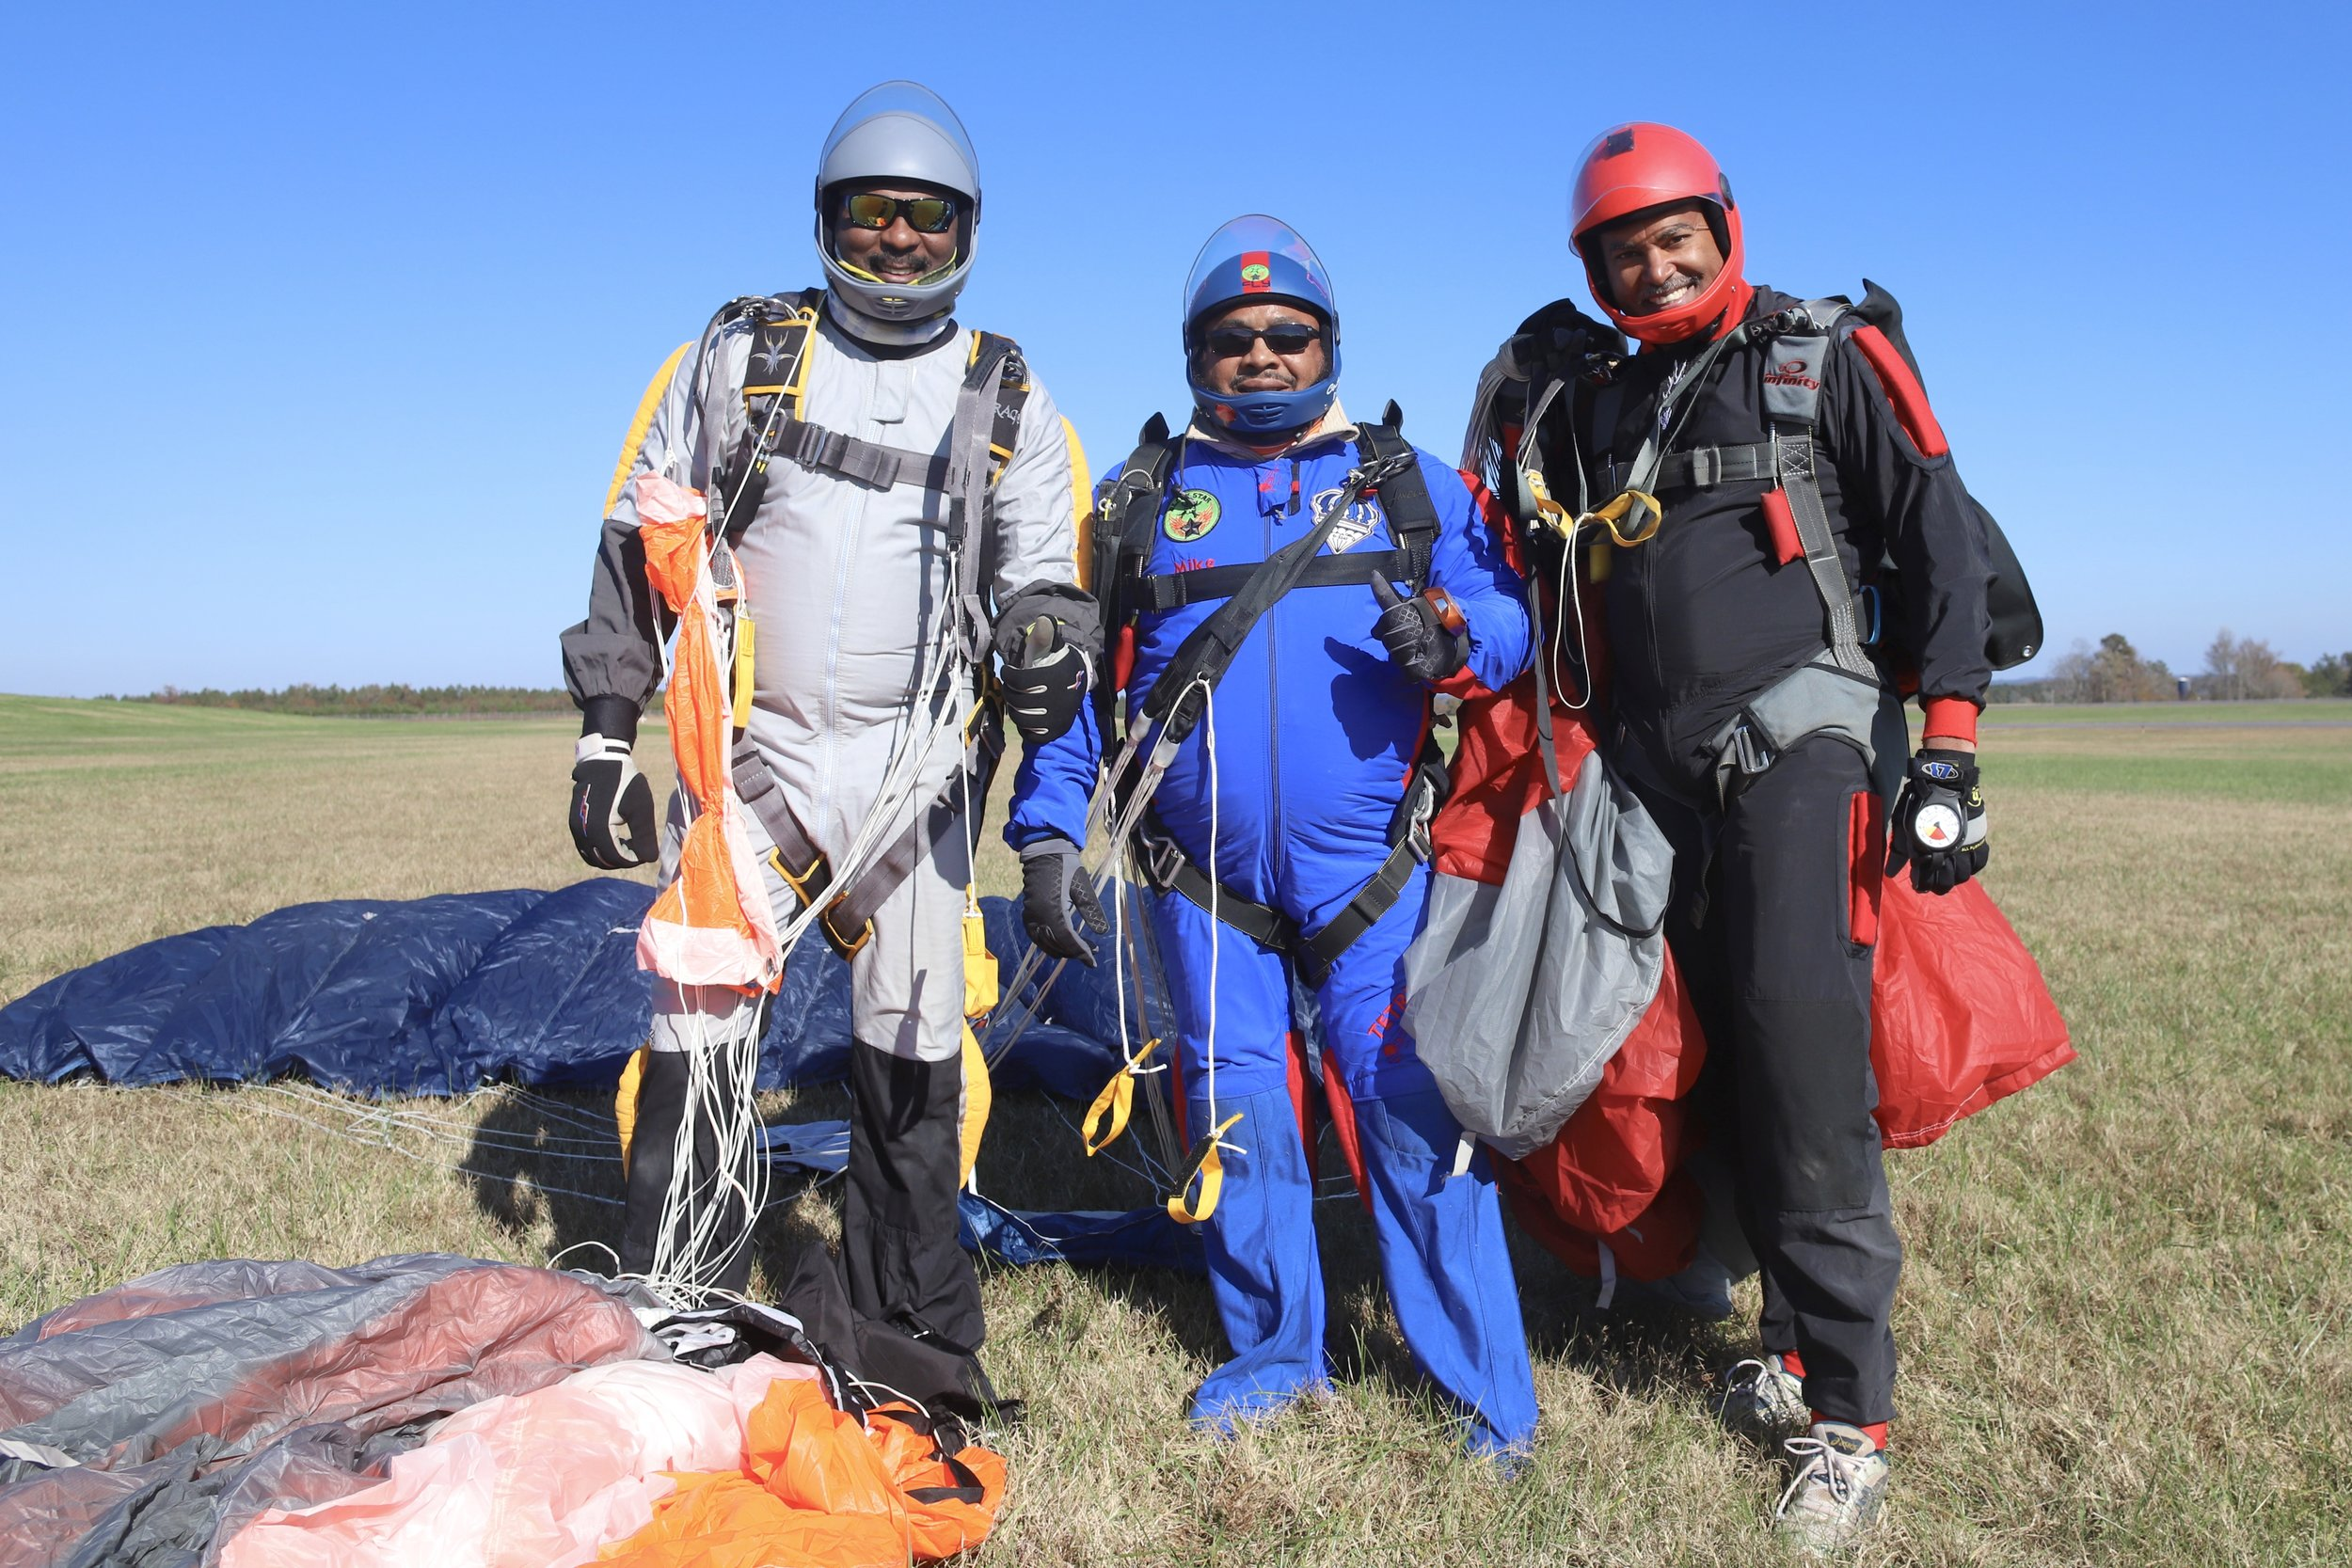 Mike (center) poses for a photo with Ken. H and Leroy J. after a successful skydive in North Carolina.  Photo courtesy of Don Carrington